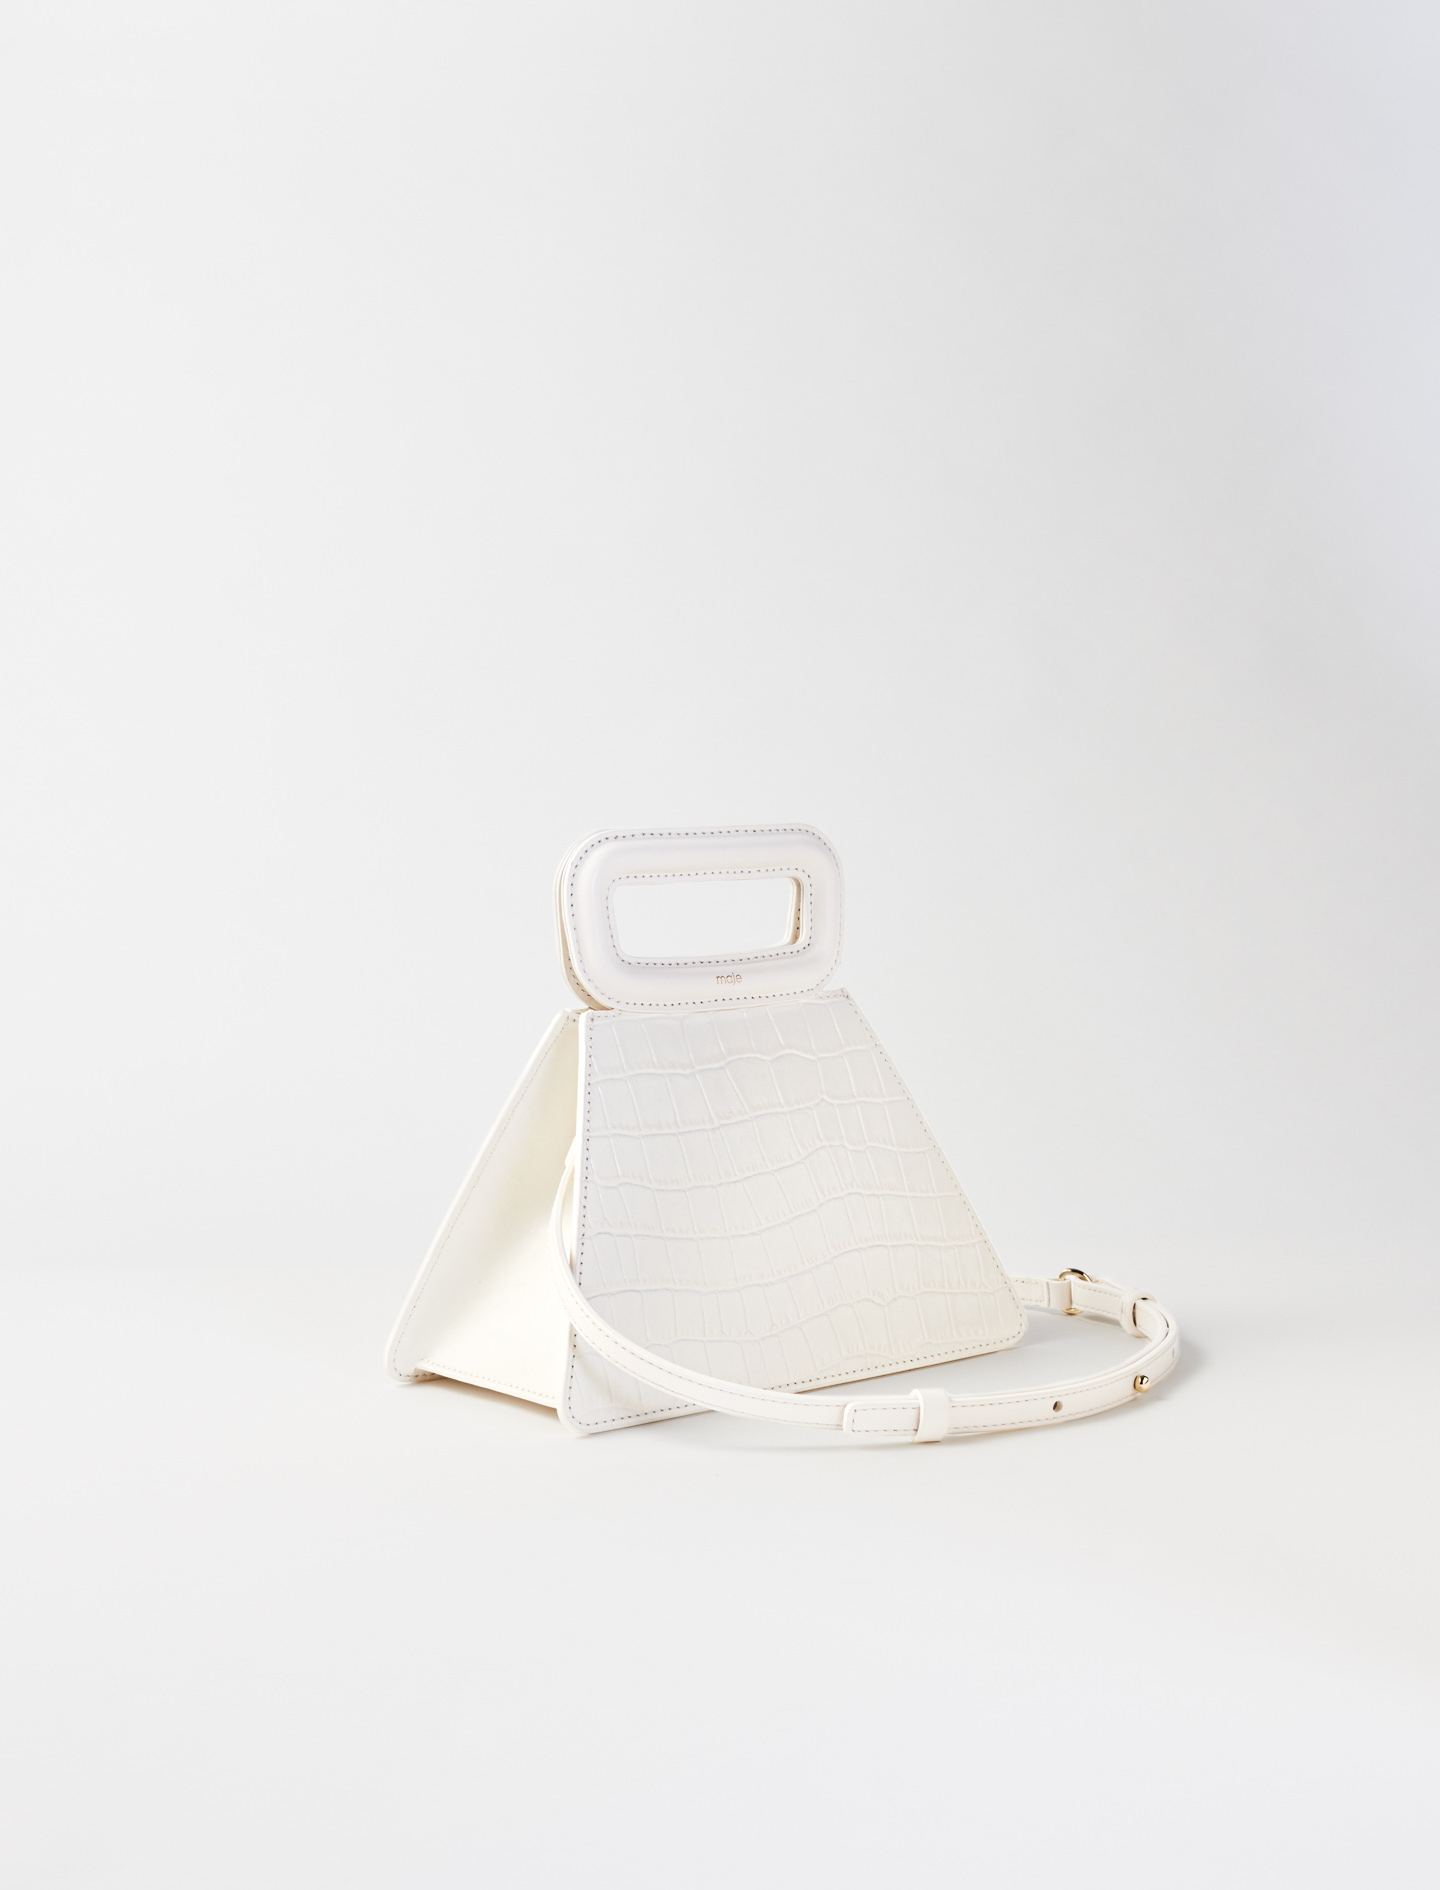 Pyramid bag with embossed leather handle - Ecru